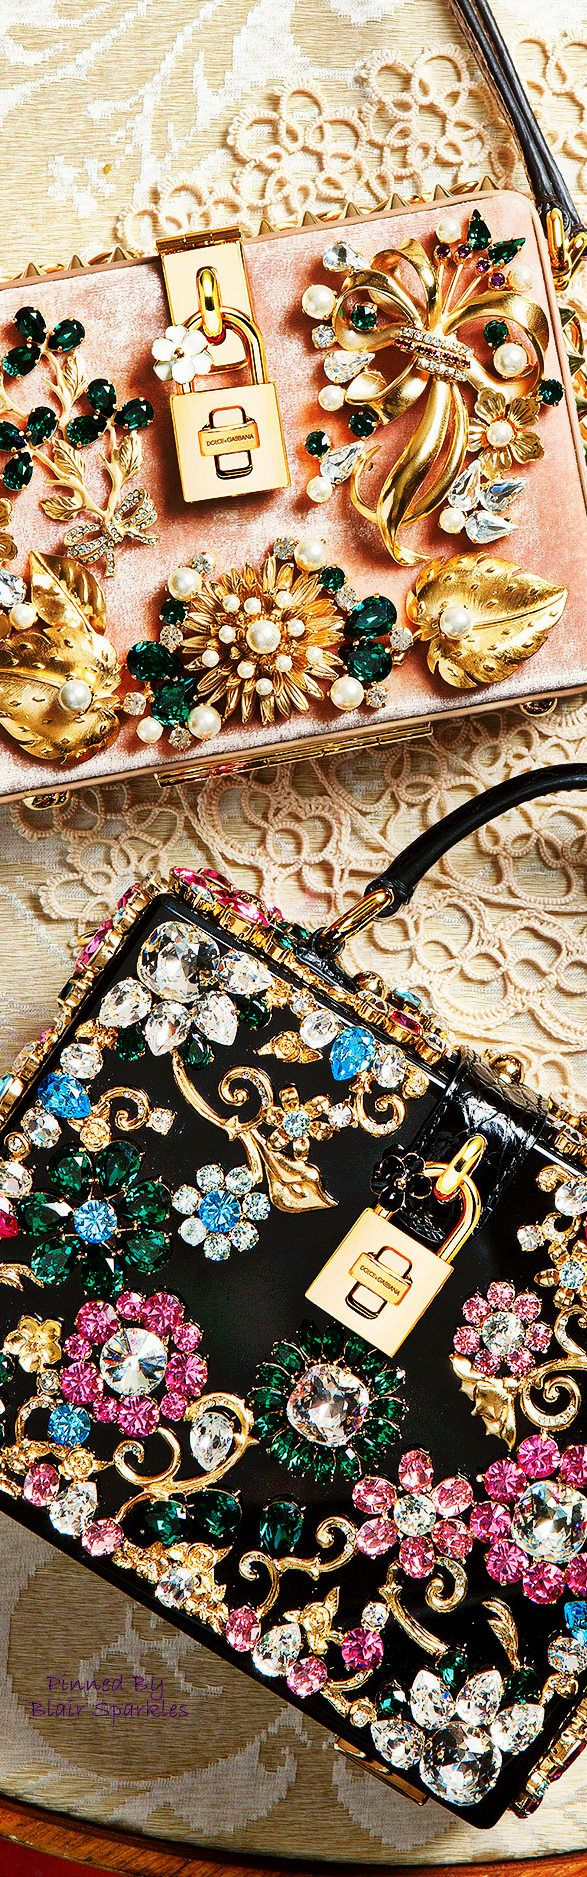 DOLCE AND GABBANA WINTER ACCESSORIES 2016 ♕♚εїз | BLAIR SPARKLES |